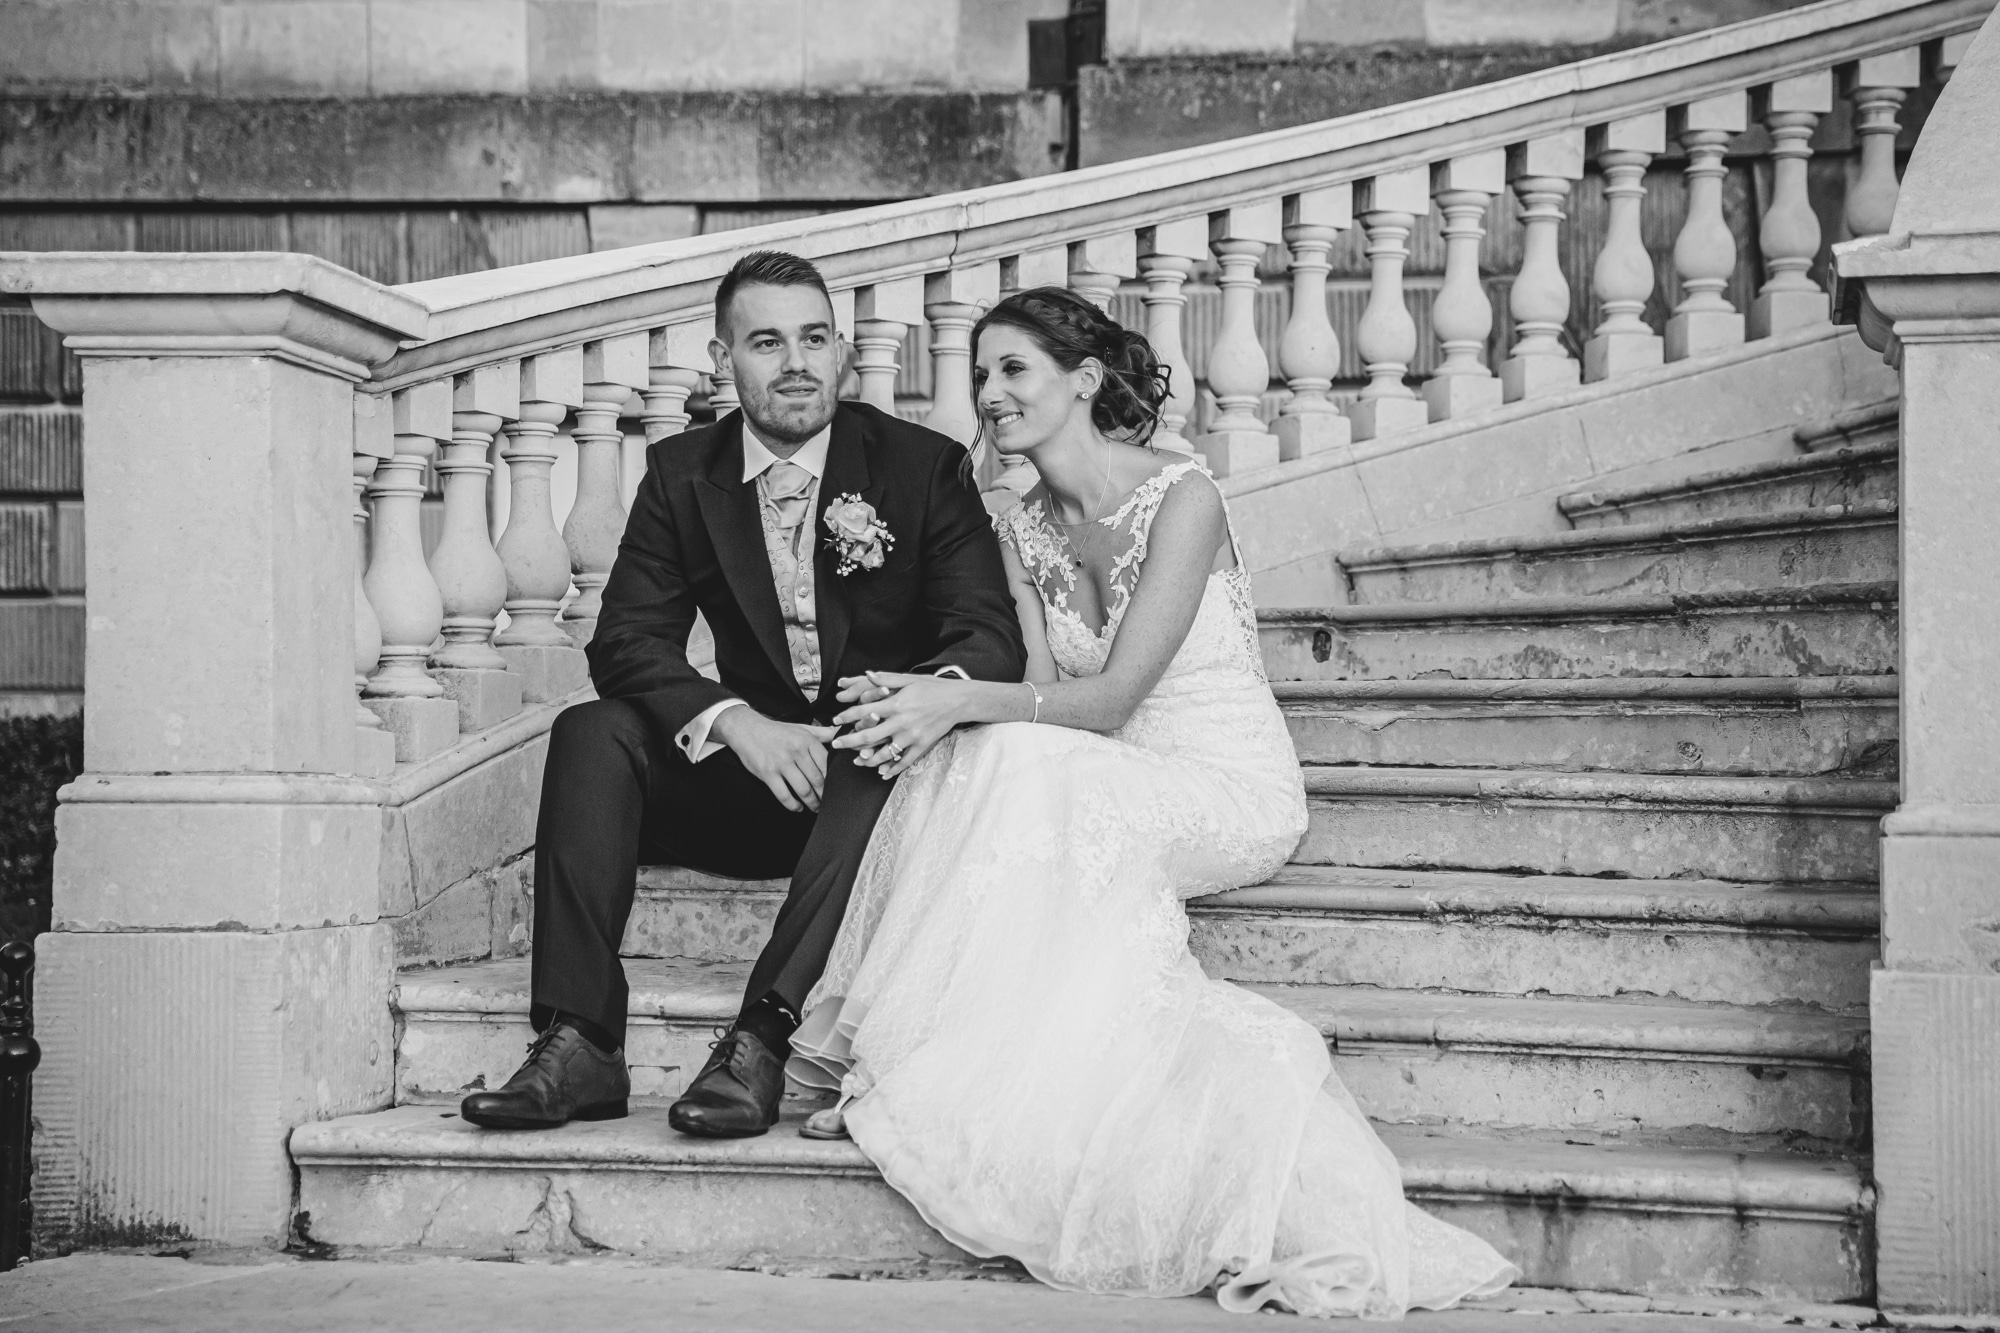 Bride & Groom on steps sharing a quiet moment